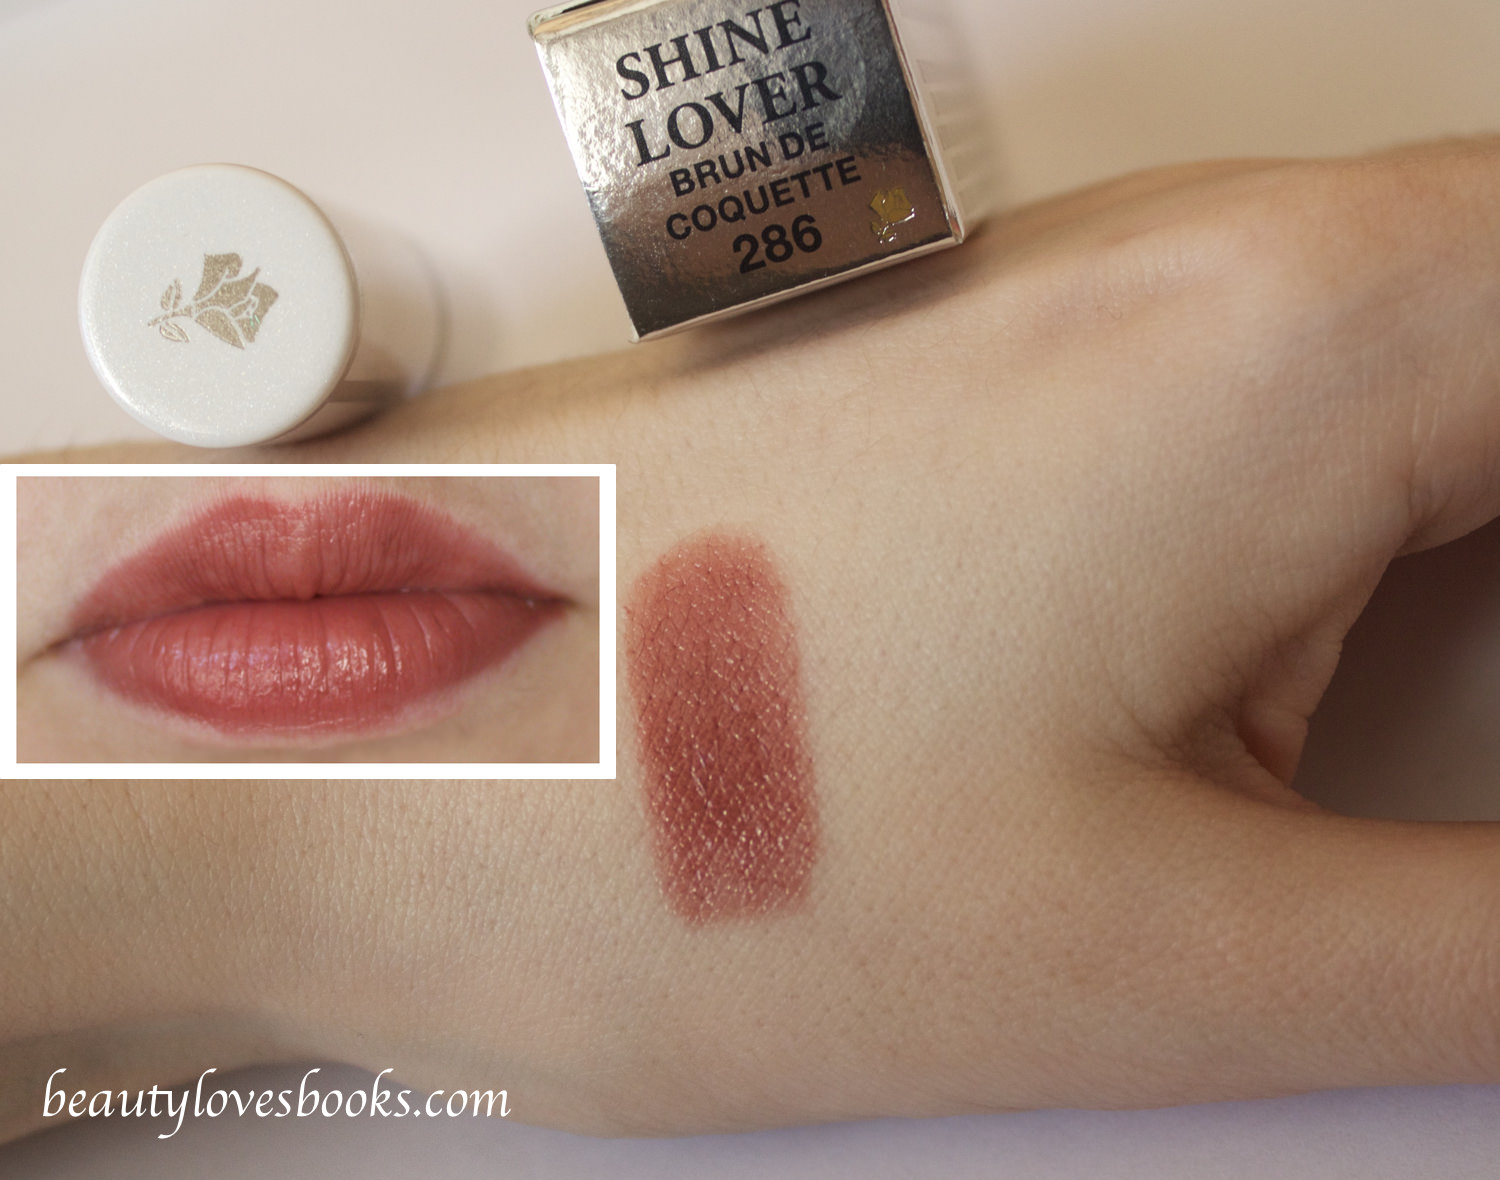 Lancome Shine lover in 286 Brun de coquette swatch